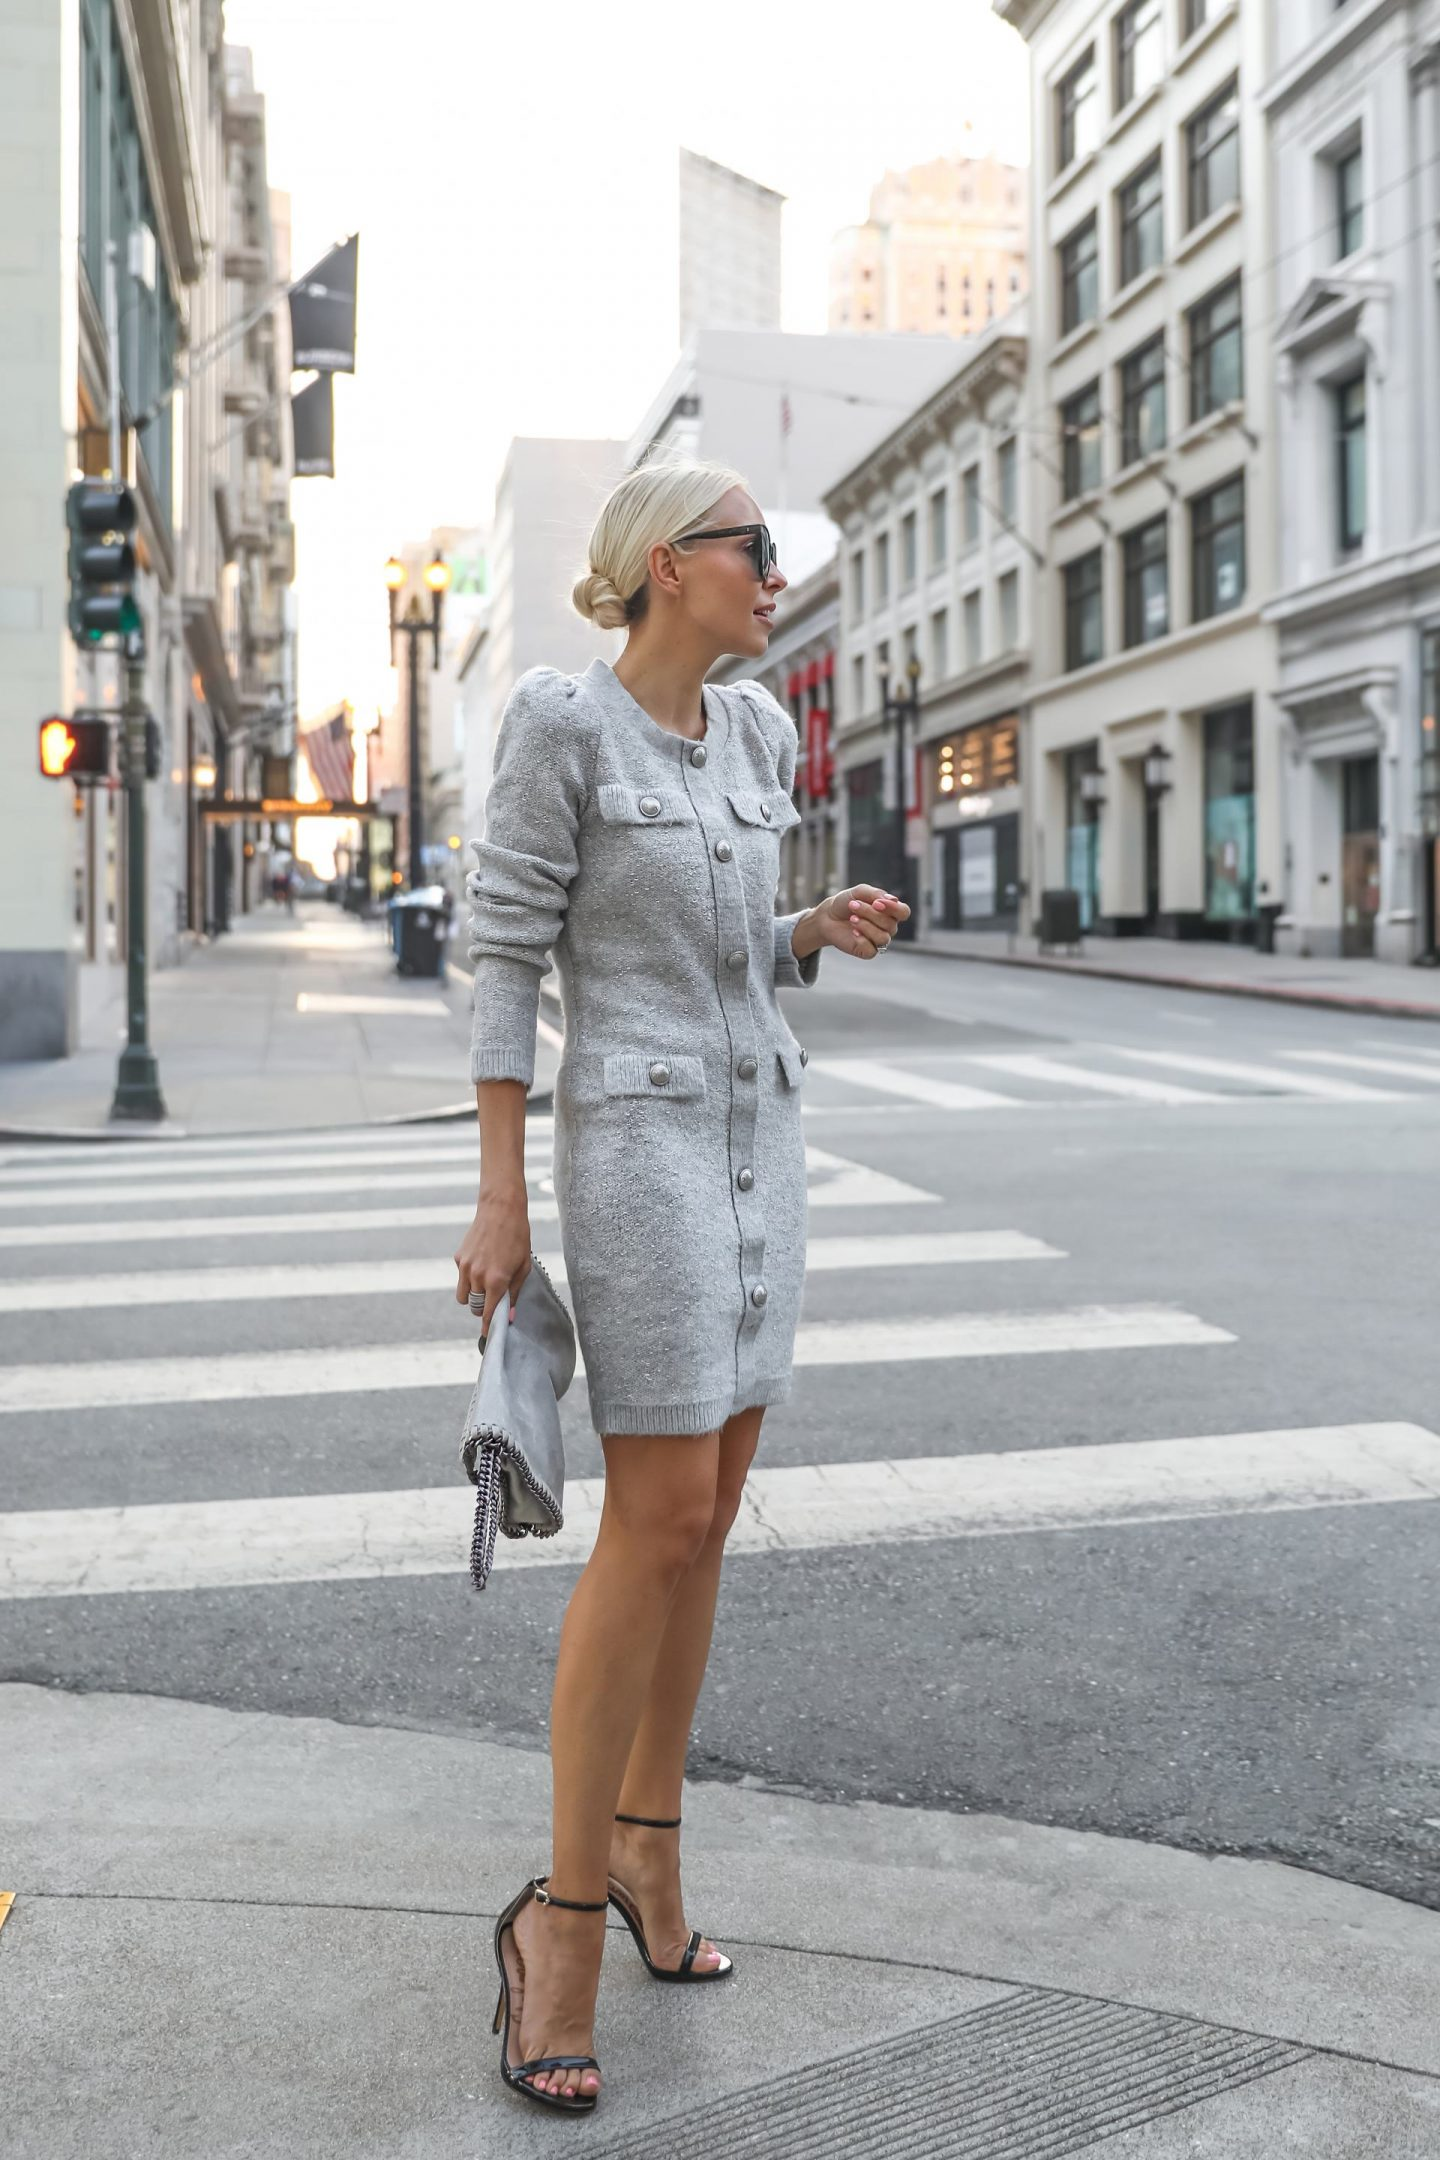 Fall style inspiration, featuring button front sweater dress from Express in grey and more favorites. By Veronica Levy, Lombard & Fifth.